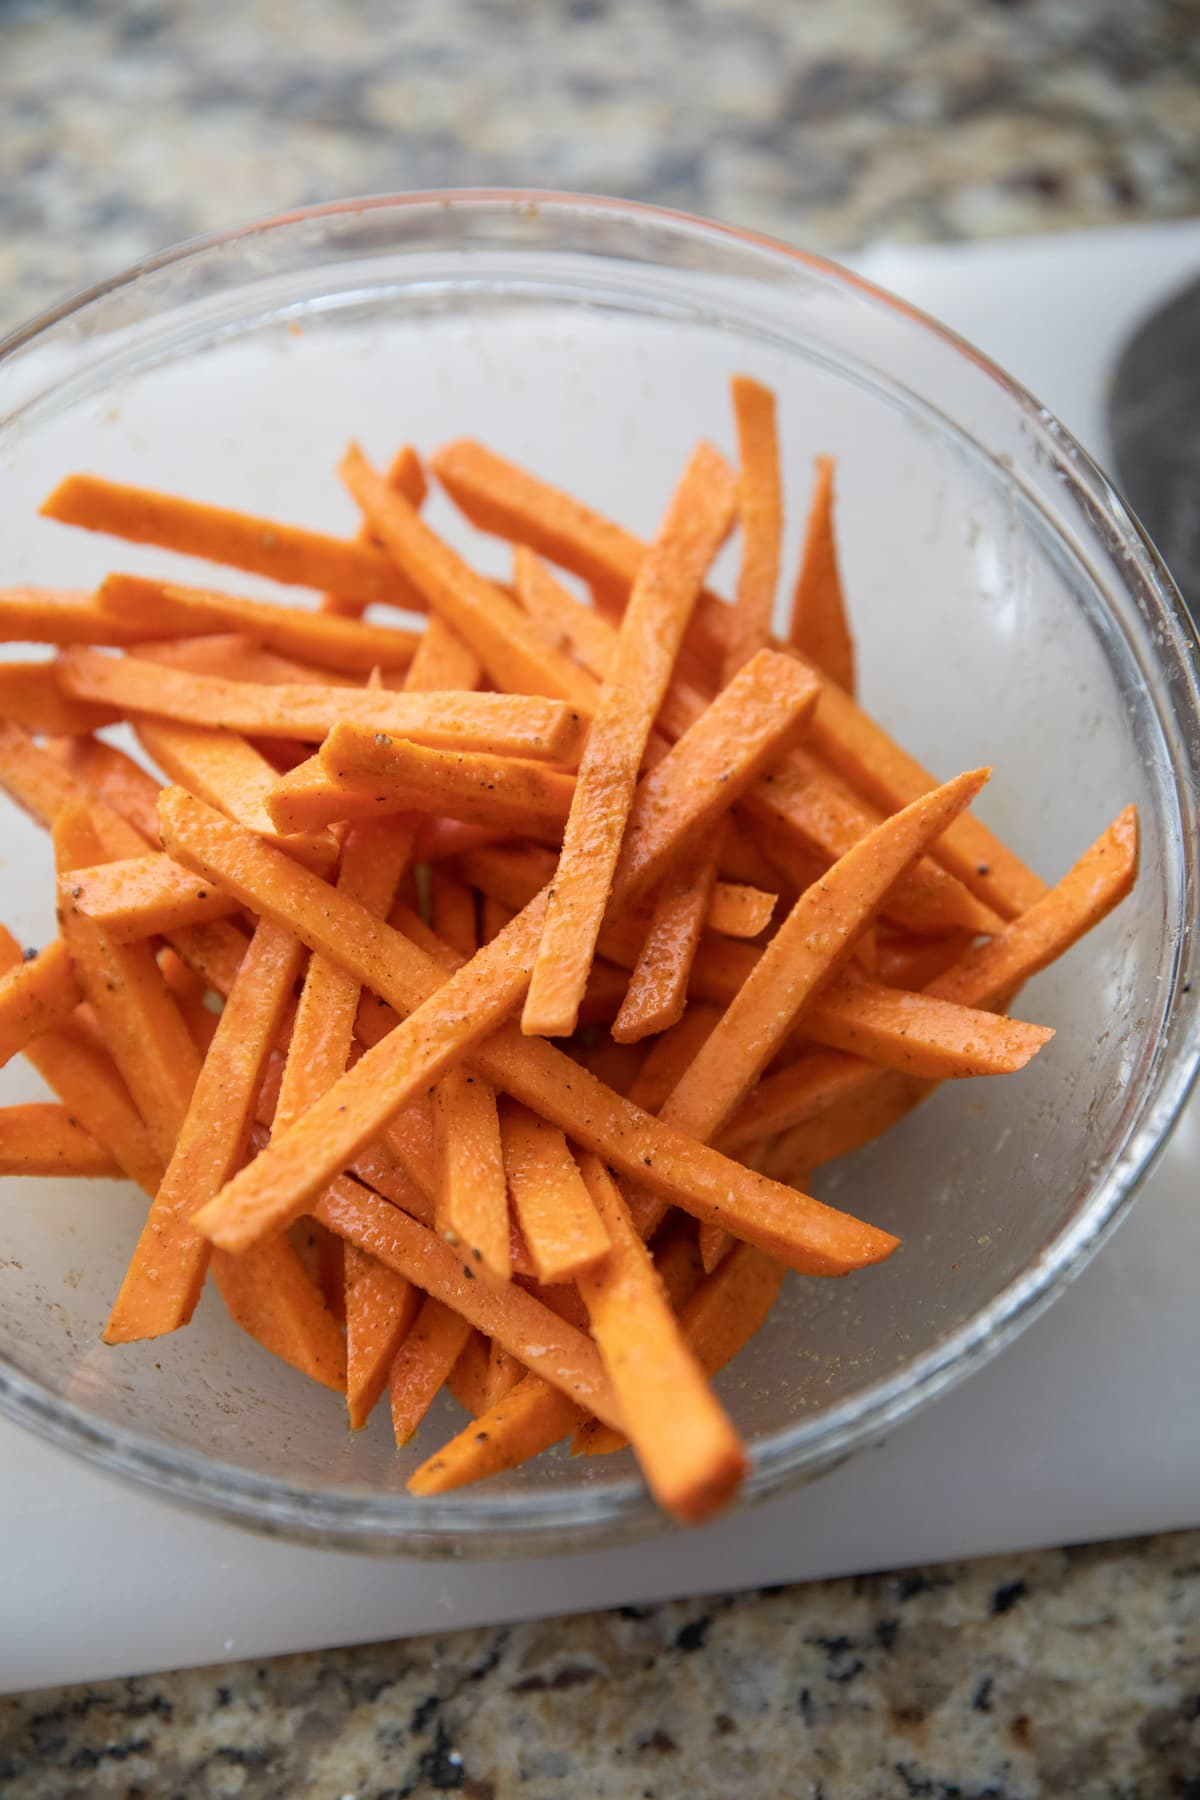 unbaked sweet potato fries in bowl